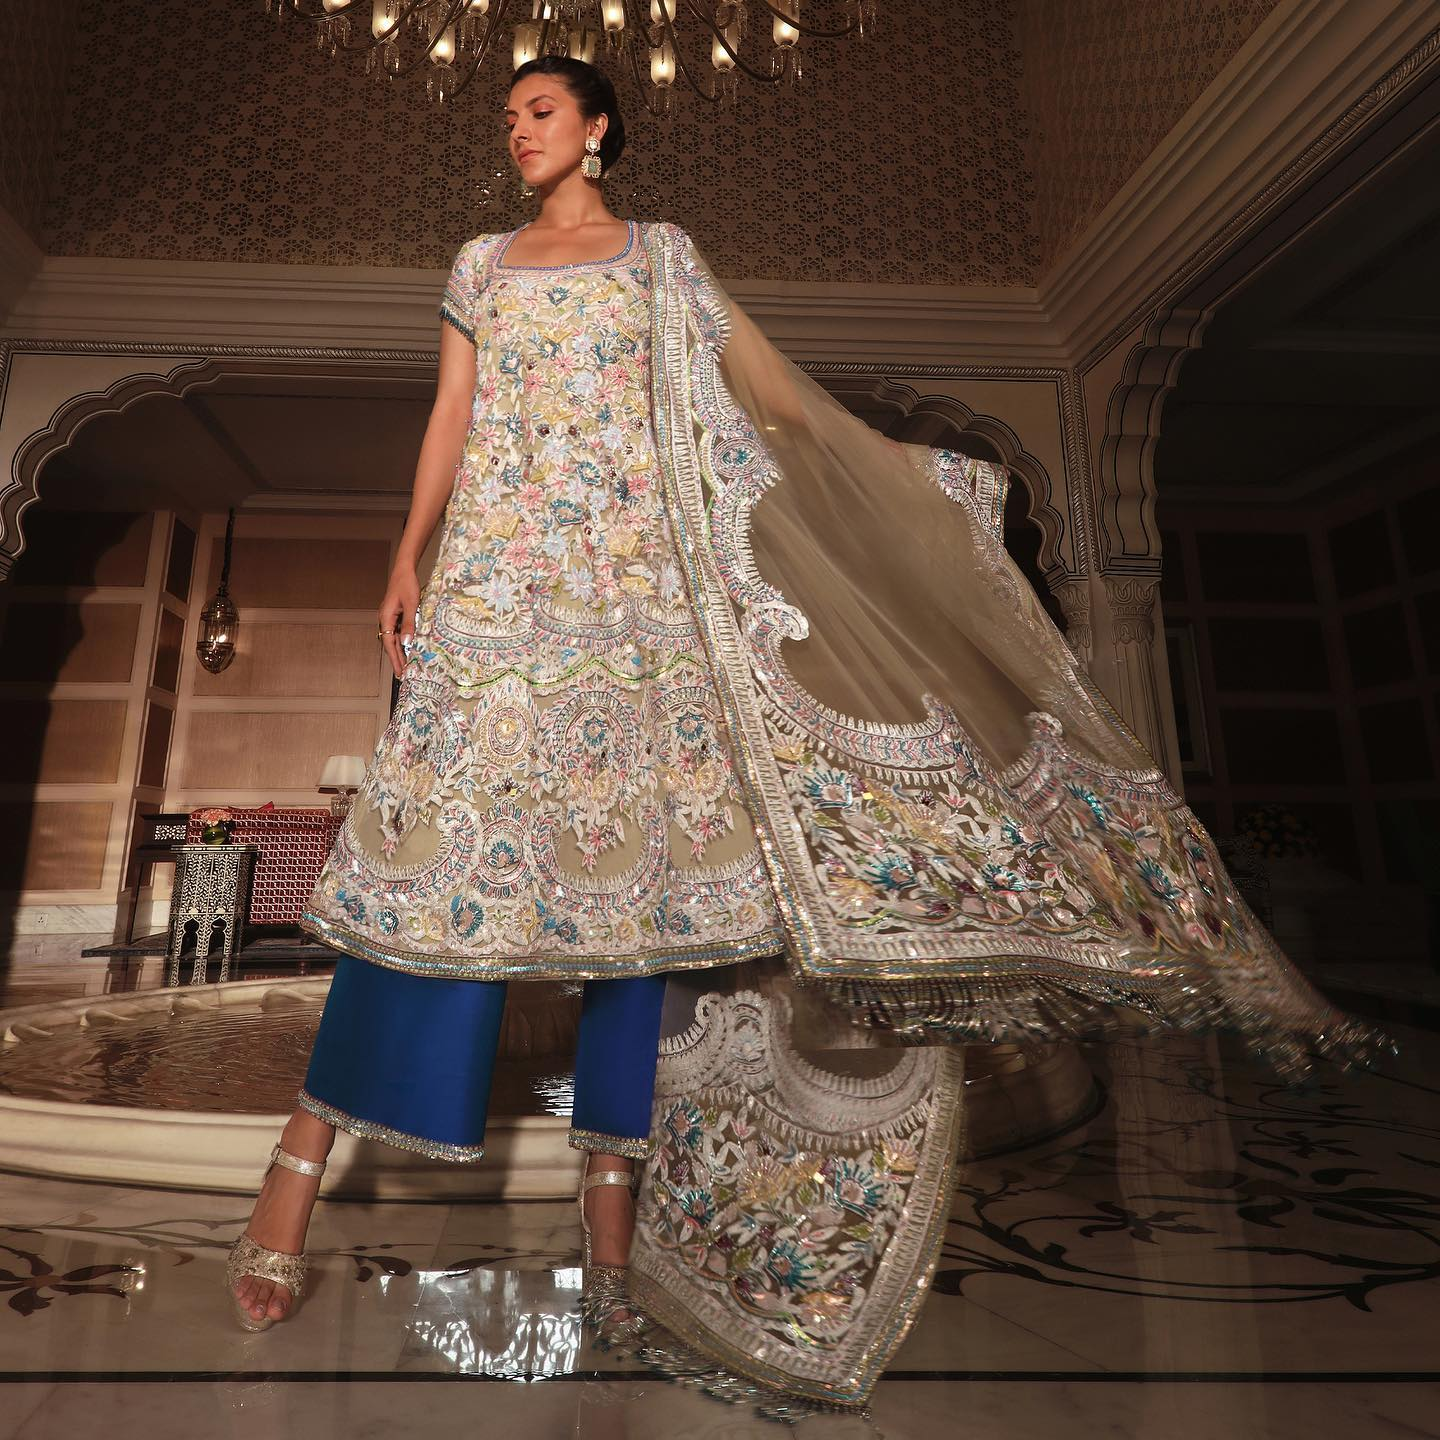 Manish Malhotra eclectic Kashmiri Kalidar embroidered in scalloped floral artwork and bright sequins paired with electric blue palazzos is your sartorial chic summer statement... 2021-04-22